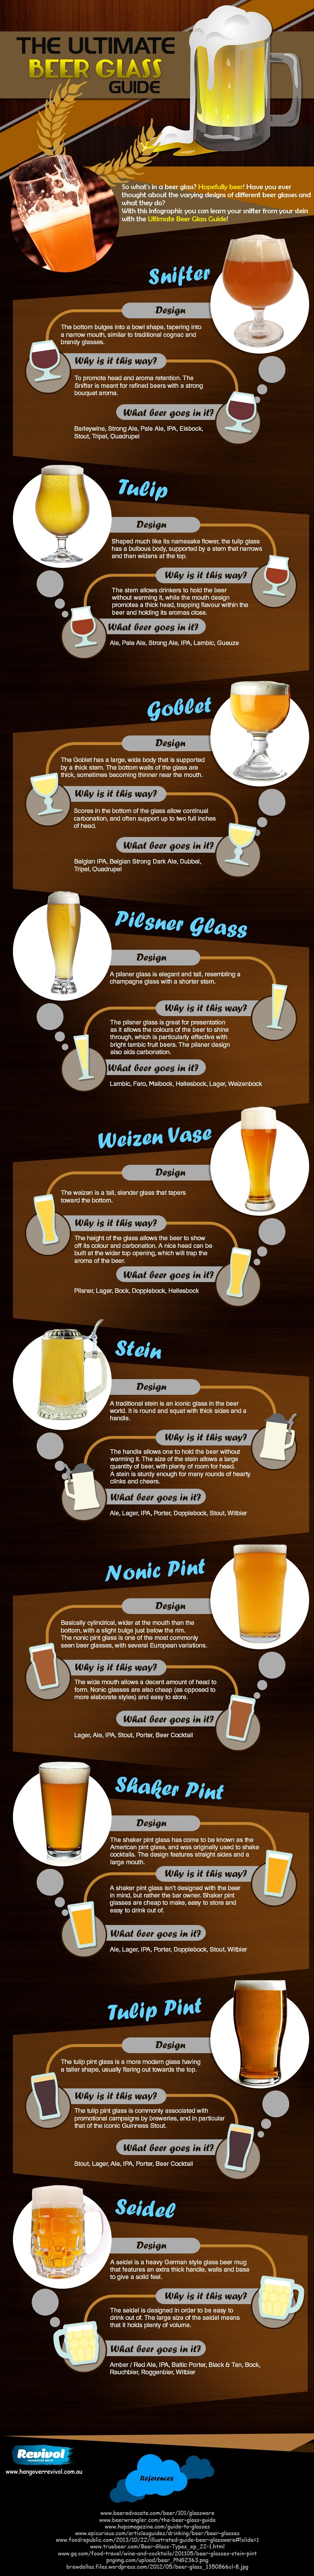 The Ultimate Beer Glass Guide [Infographic]